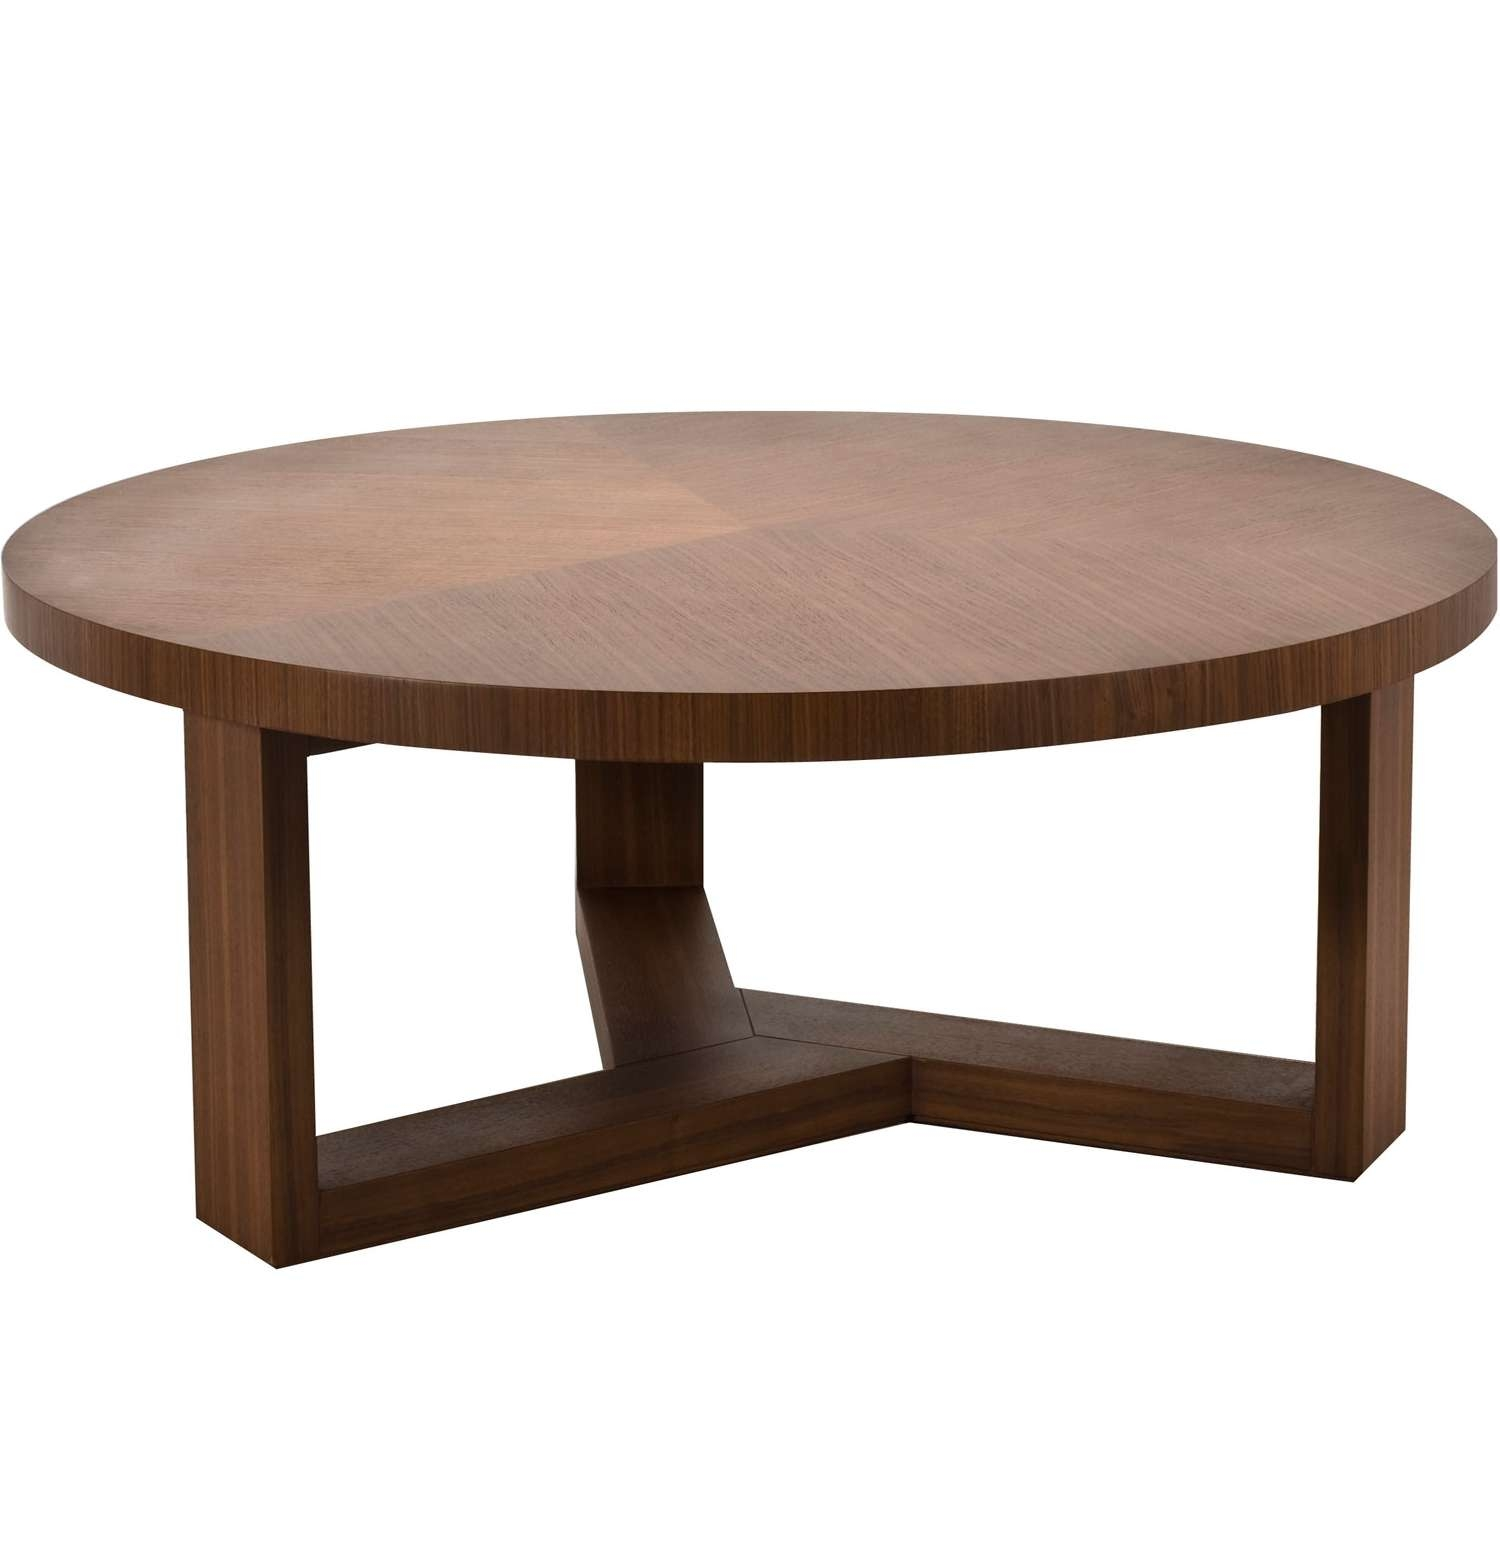 Coffee Tables : Round Table Coffee Glass Top Circle Square And Regarding Latest Small Circle Coffee Tables (View 5 of 20)